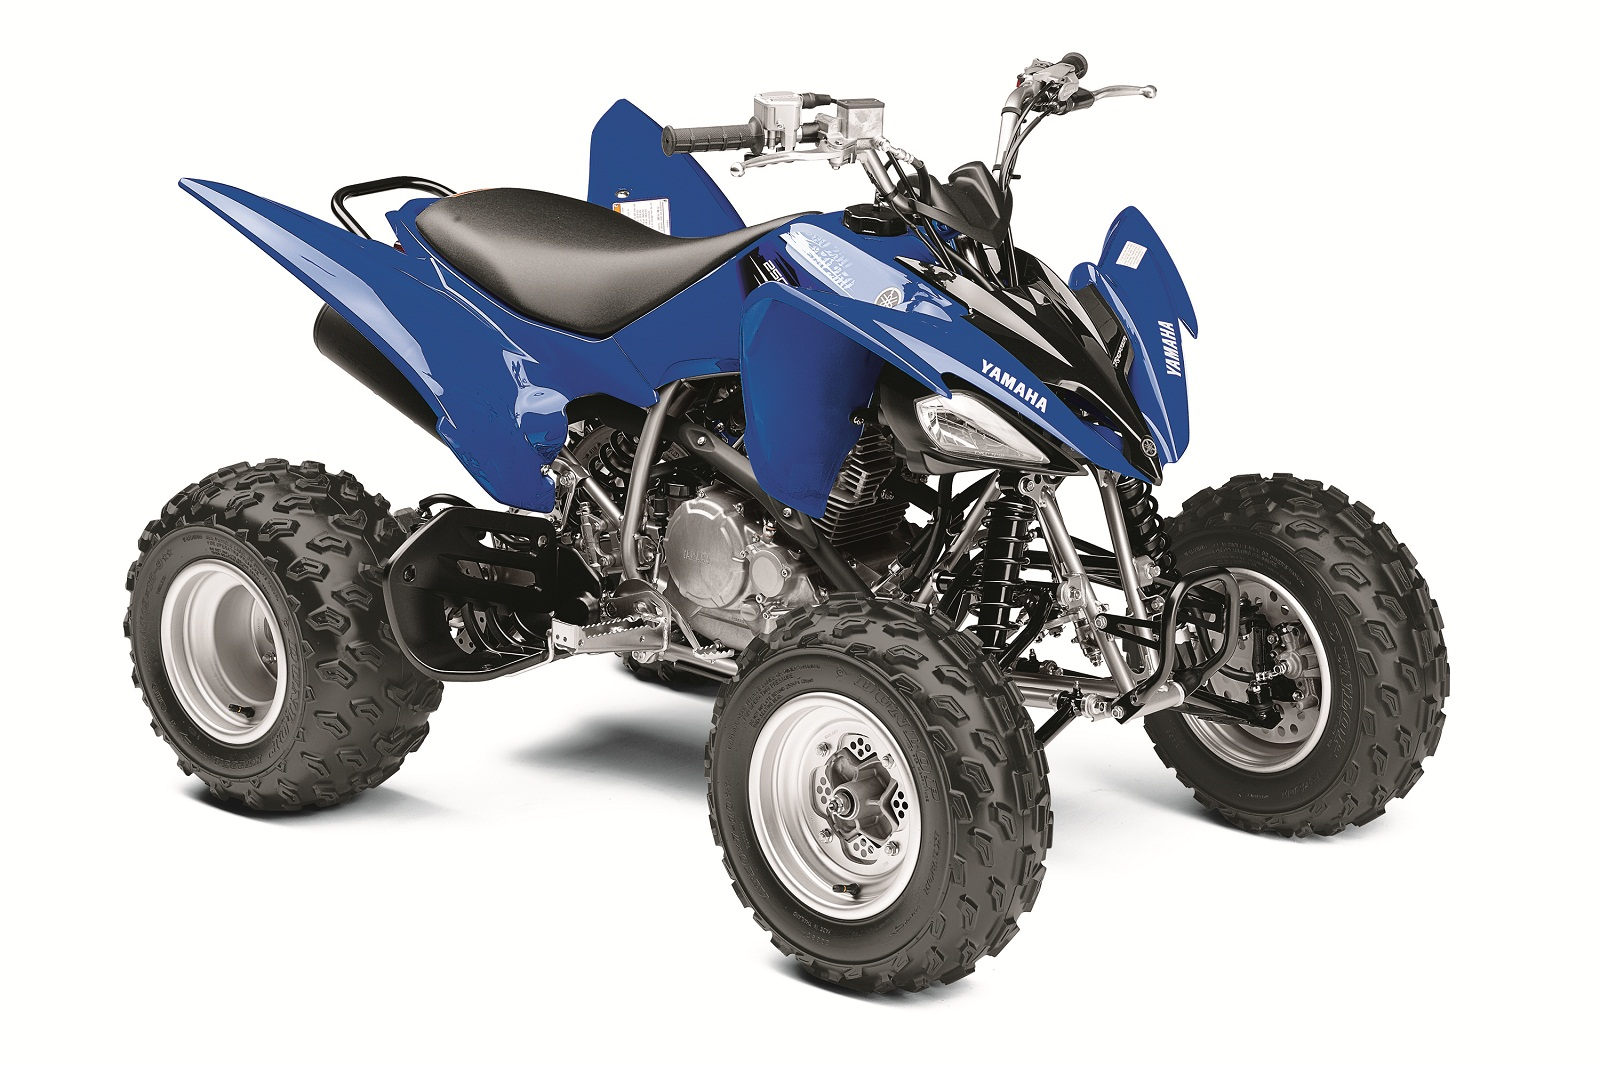 2012 yamaha raptor 250 top speed for Yamaha raptor 250 price